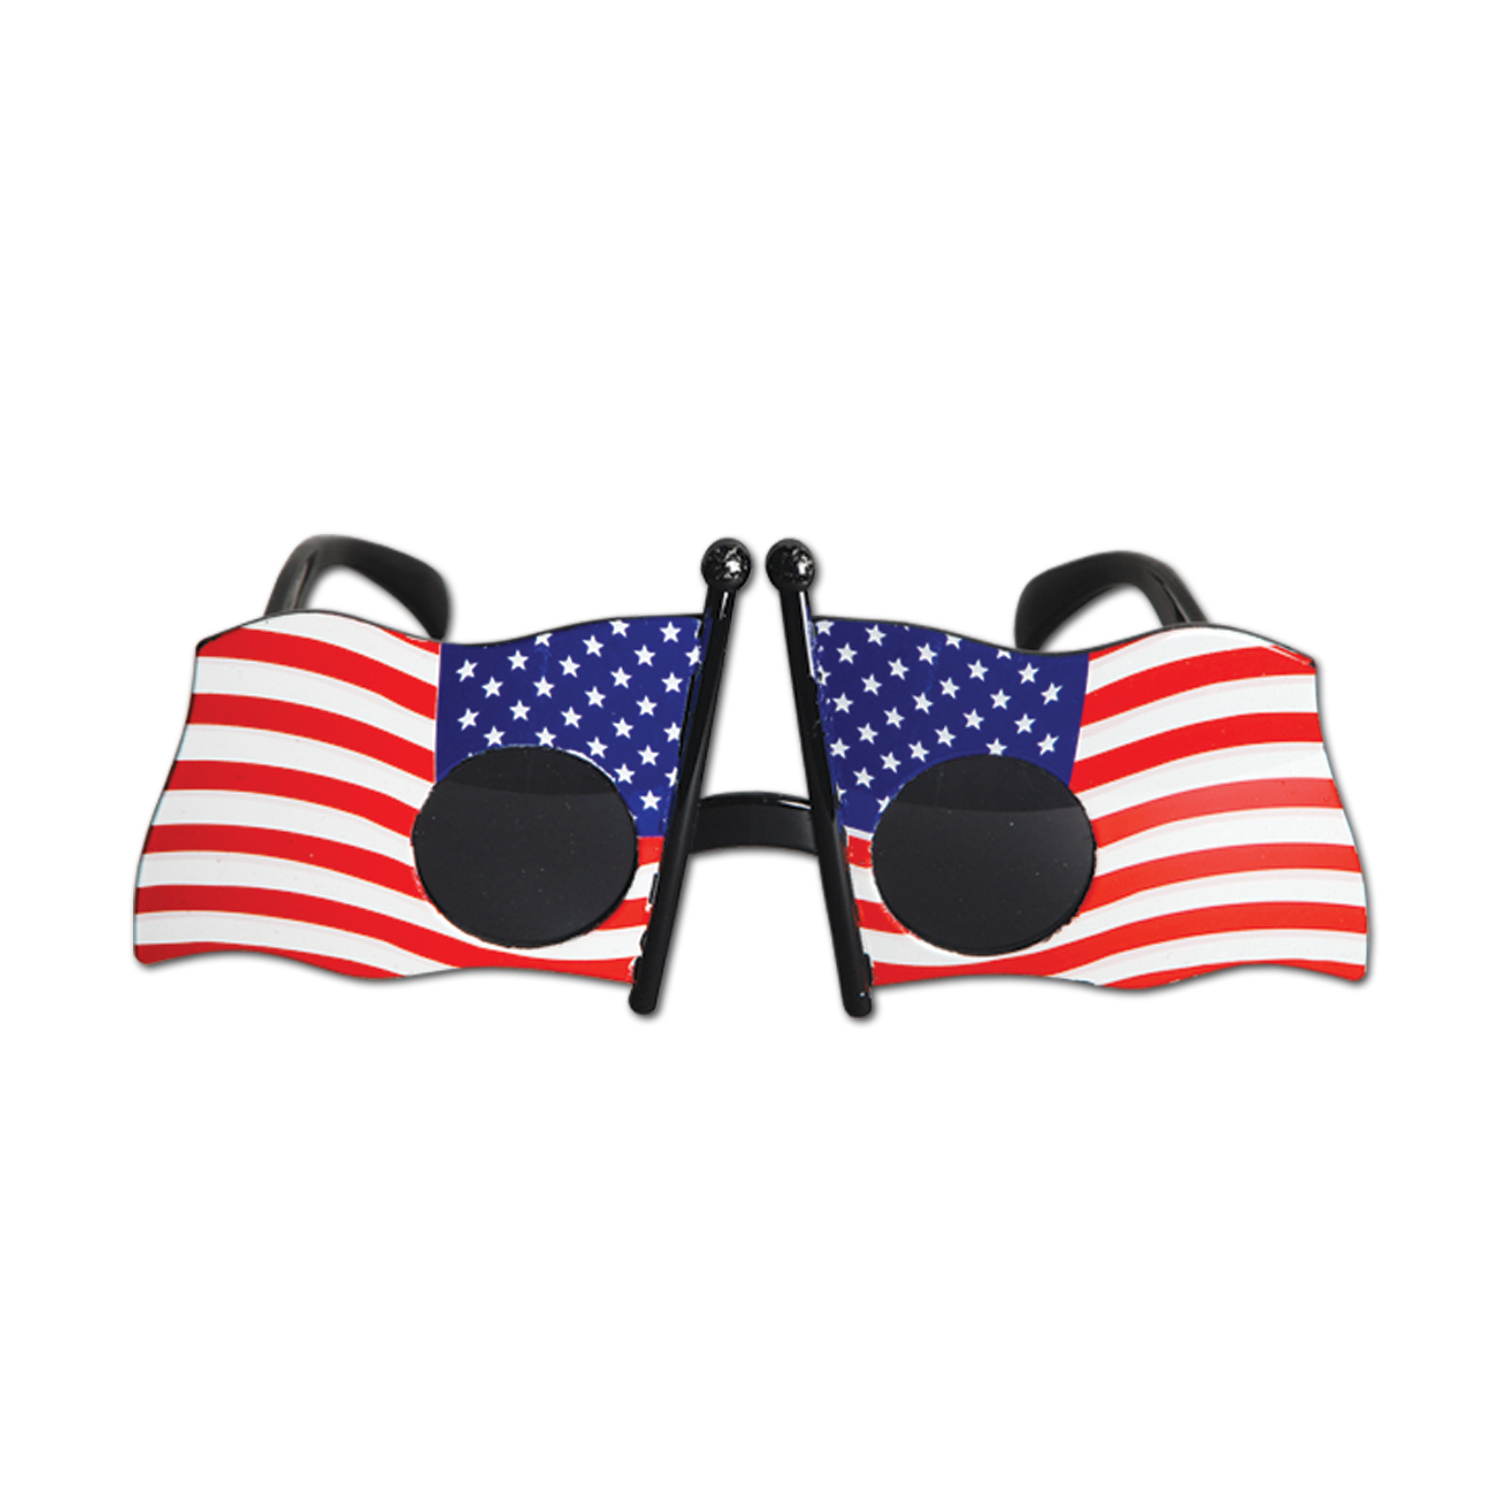 Patriotic Fanci-Frames (Pack of 6) Novelty Glasses, Patriotic Fanci-Frames, Red White Blue, Fourth of July, Wholesale party supplies, Cheap novelty glasses, Inexpensive party favors